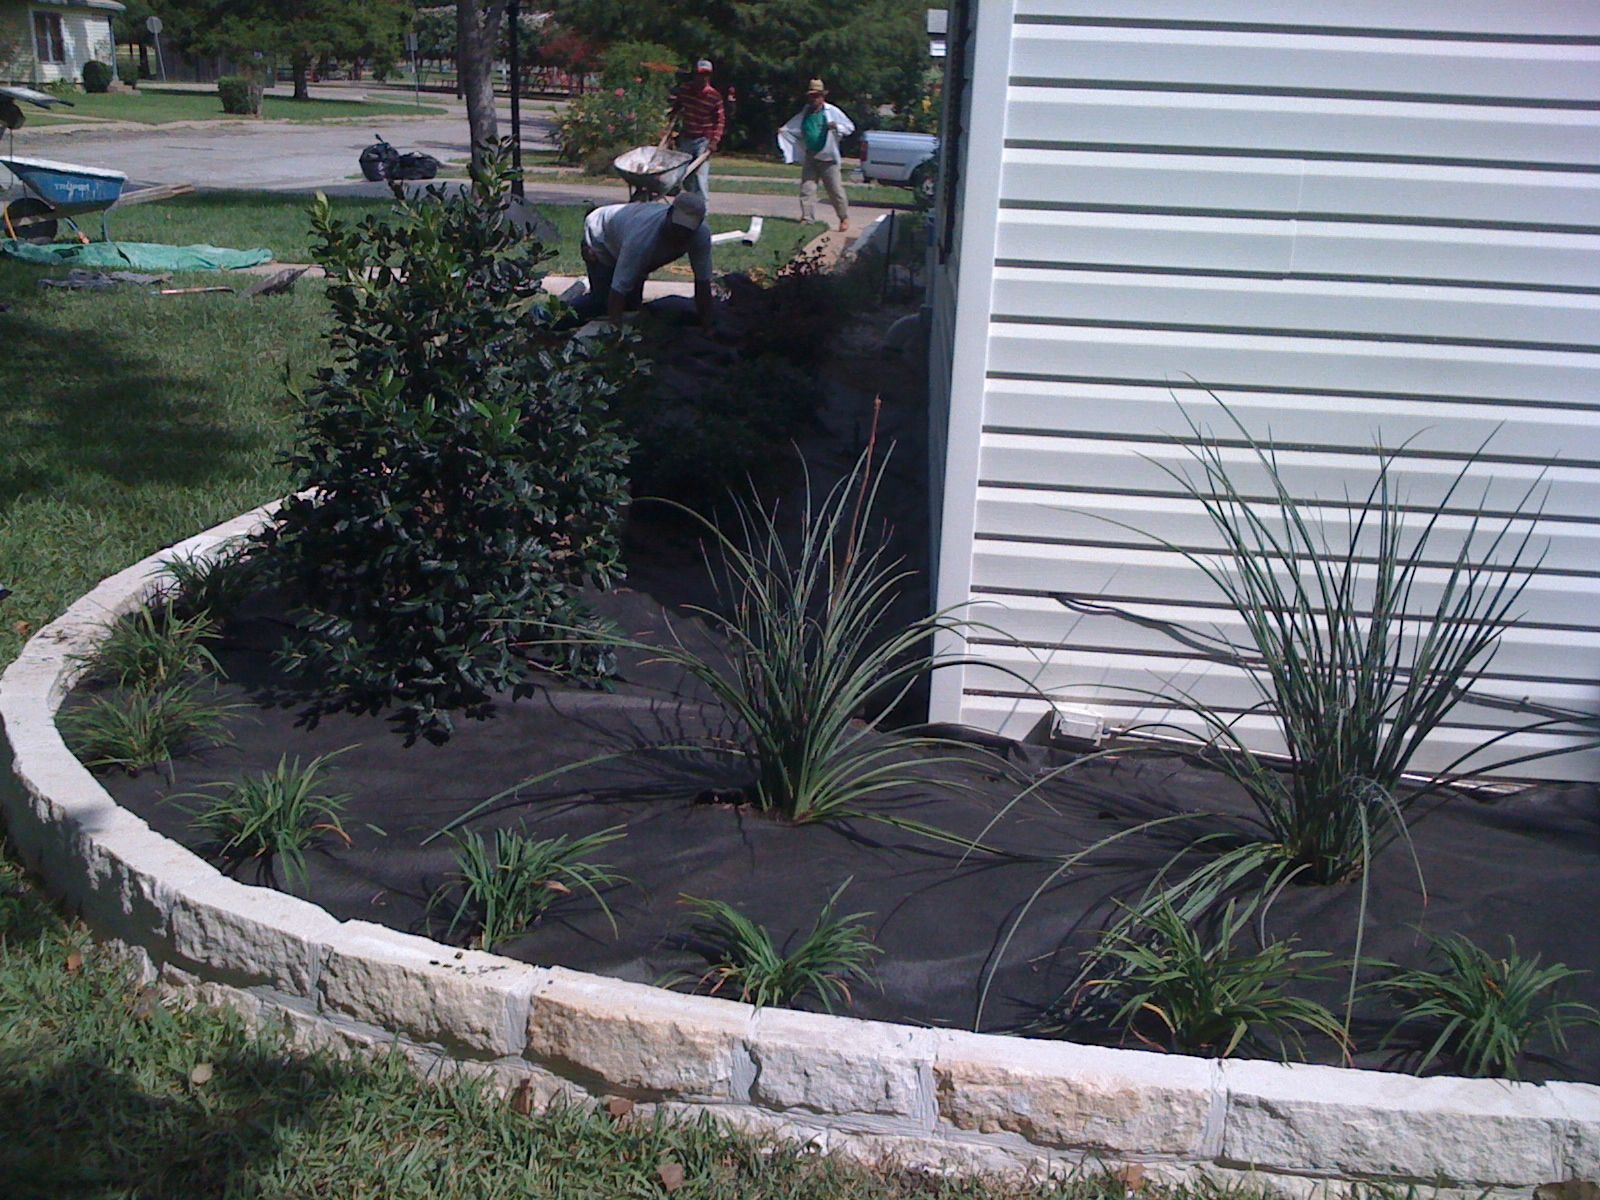 Groundscape A Fort Worth Landscape Company Installs 640 x 480